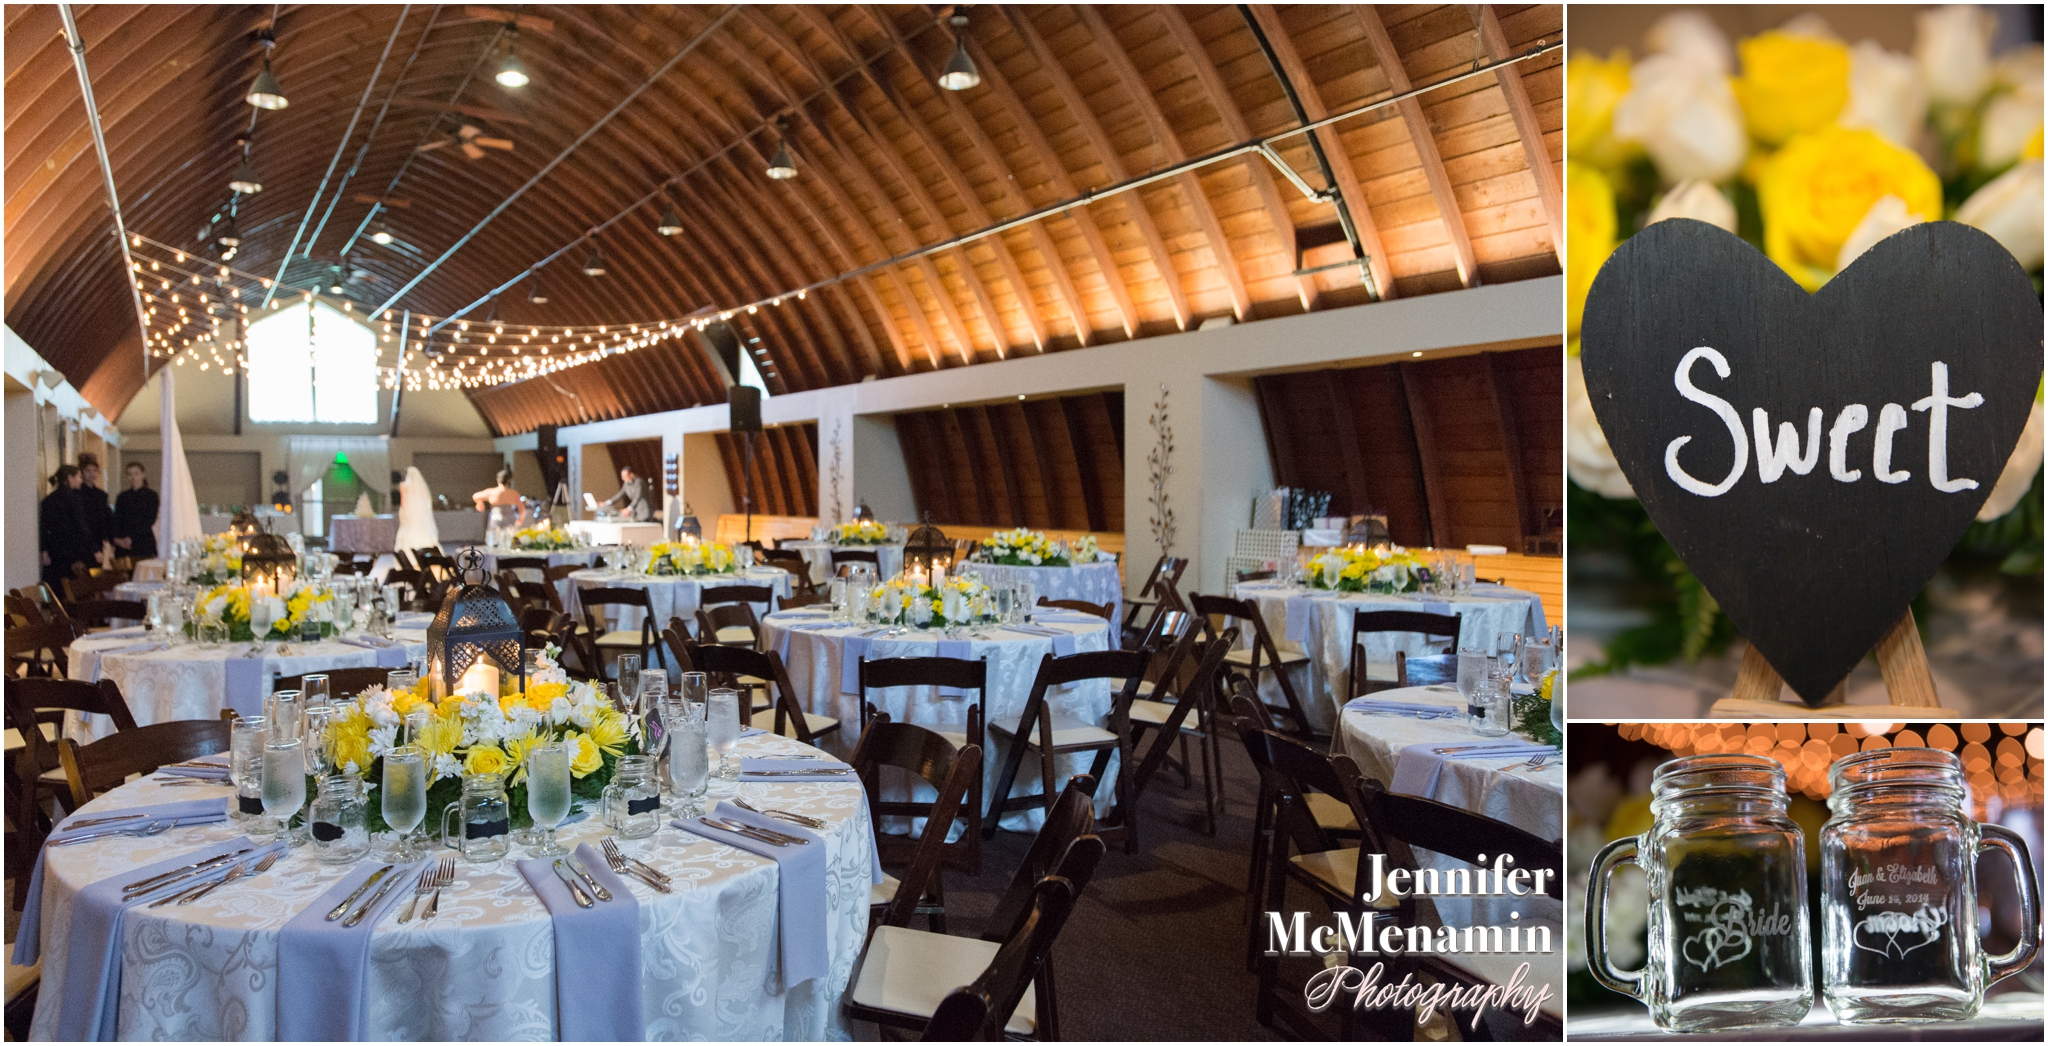 059_SchneiderMagallanes_02708-0565_JenniferMcMenaminPhotography_Baltimore-wedding-photography_St-Mary-of-the-Mills-Church_The-Other-Barn_Maryland-wedding-photography